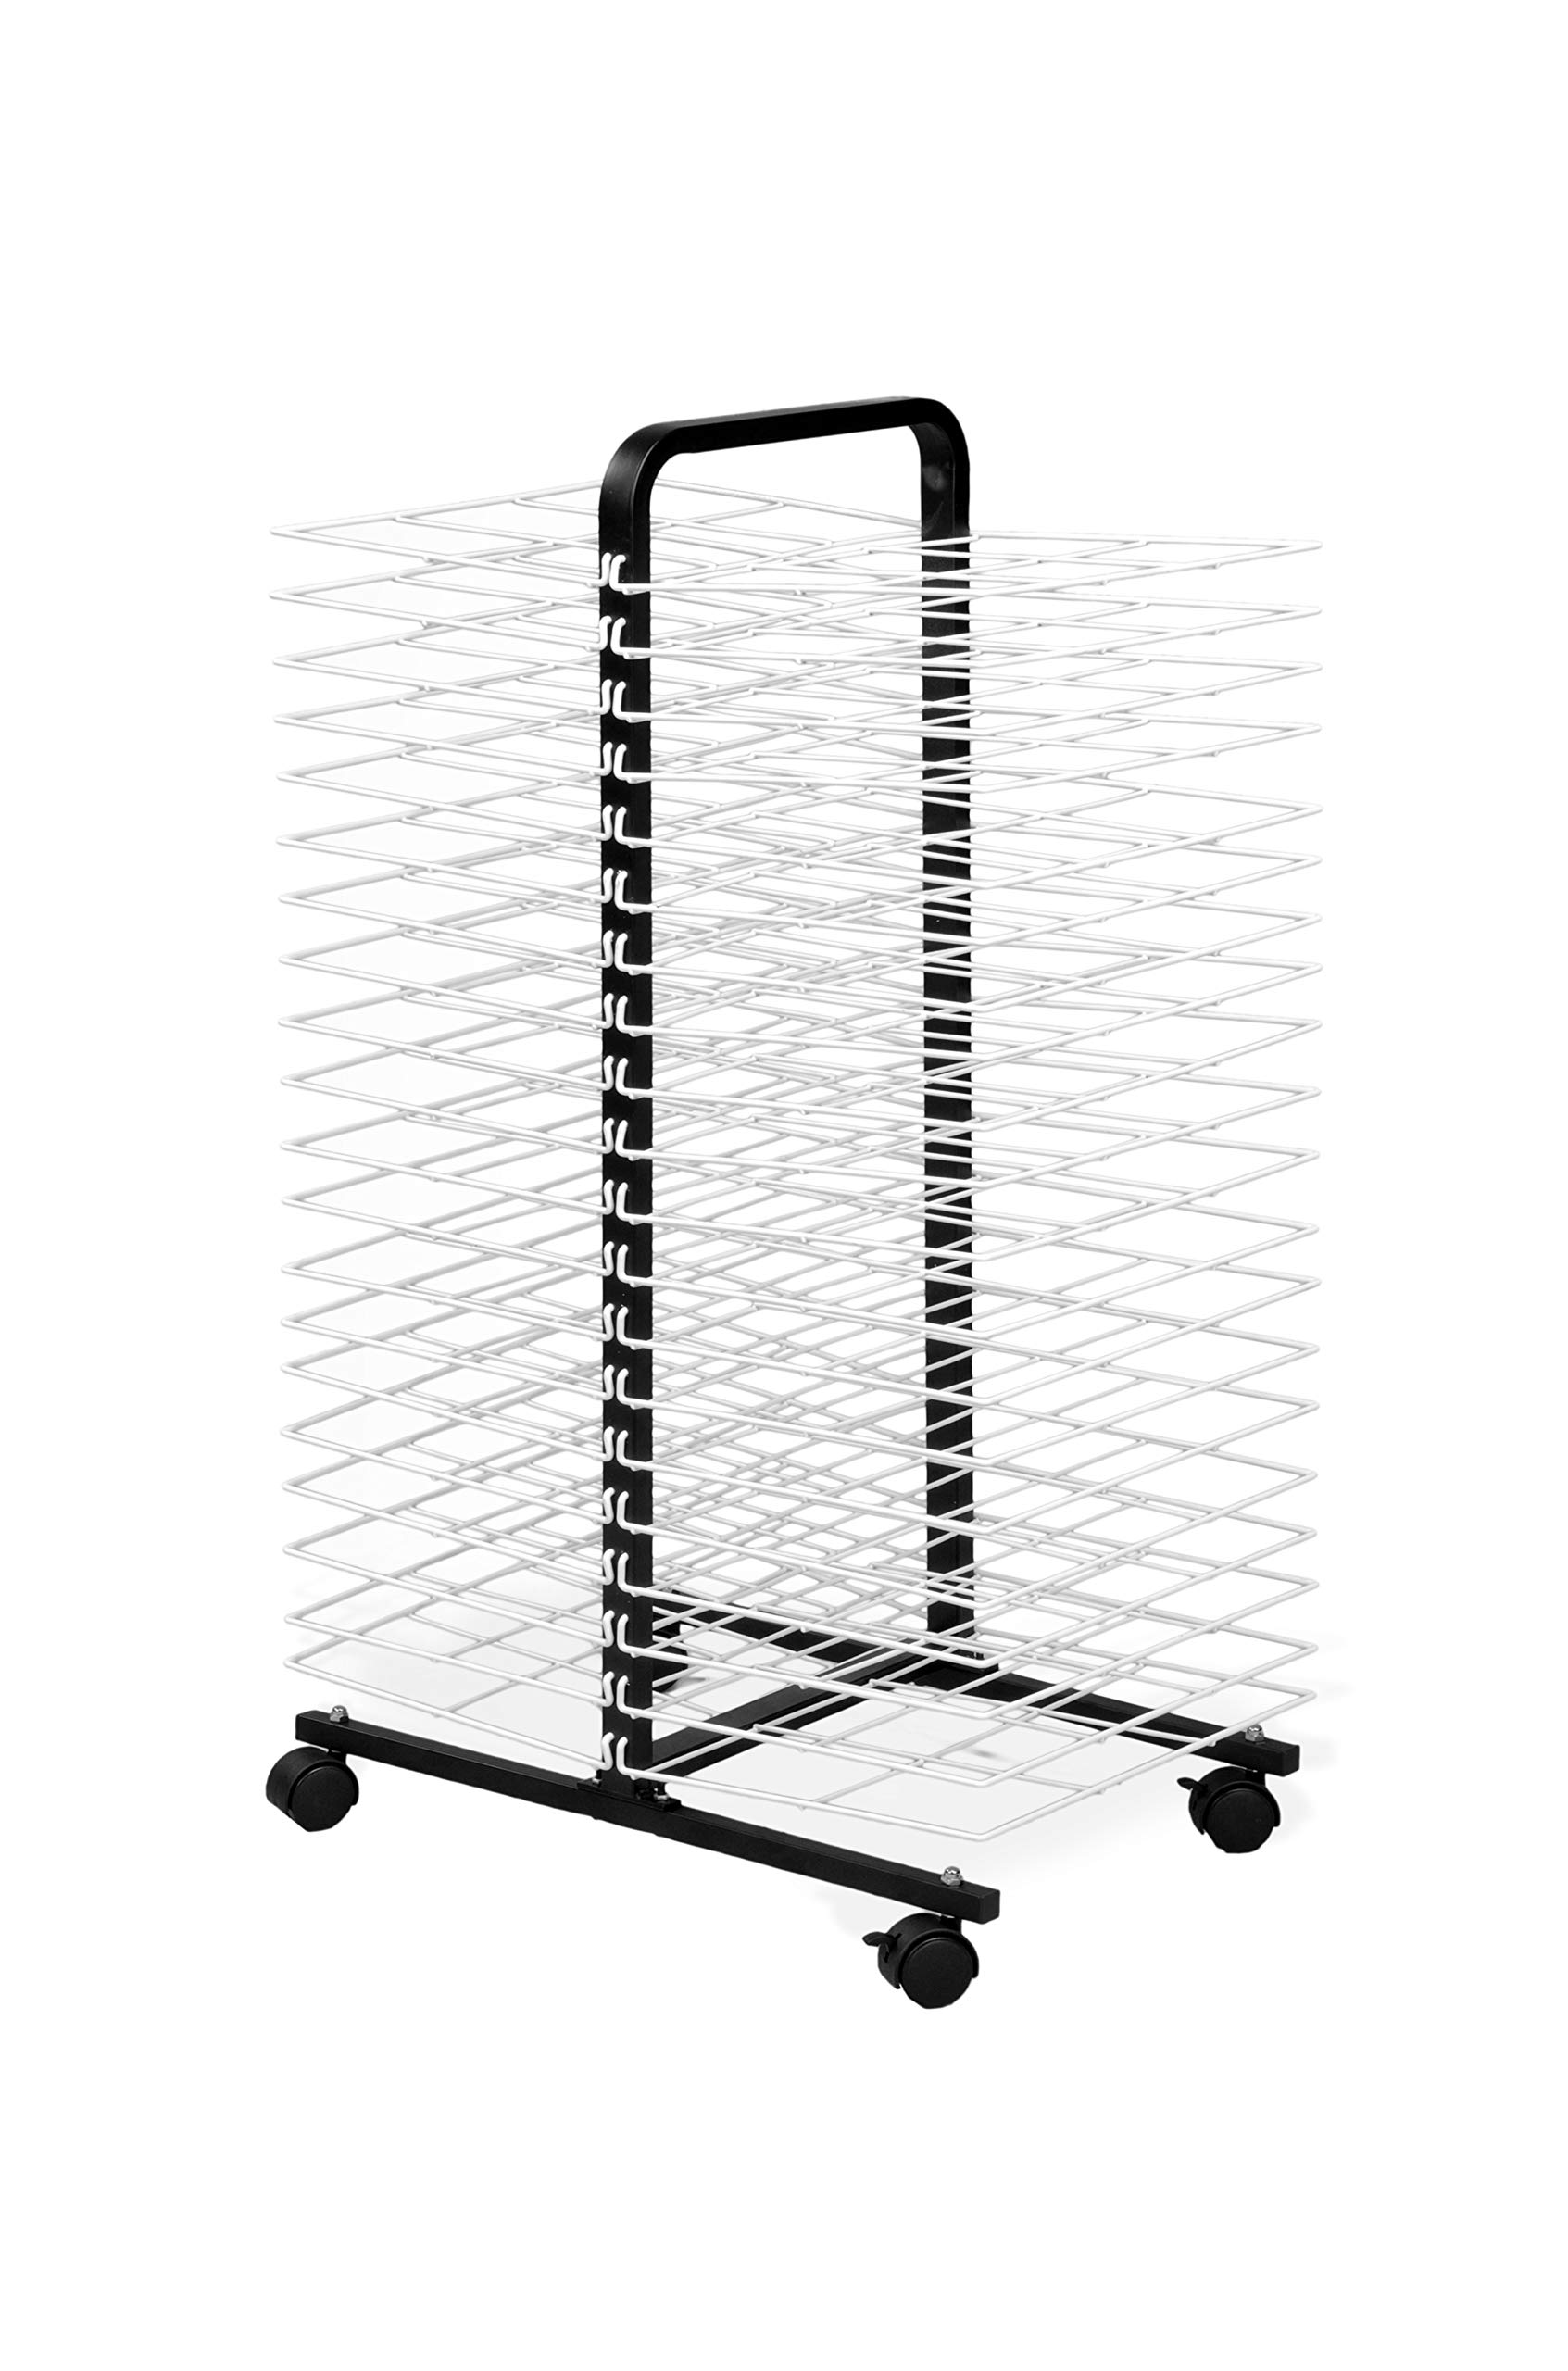 American Educational Products A-C1168 Drying Rack on Wheels, 40 Shelf, 7'' Height, 18'' Wide, 48'' Length by American Educational Products